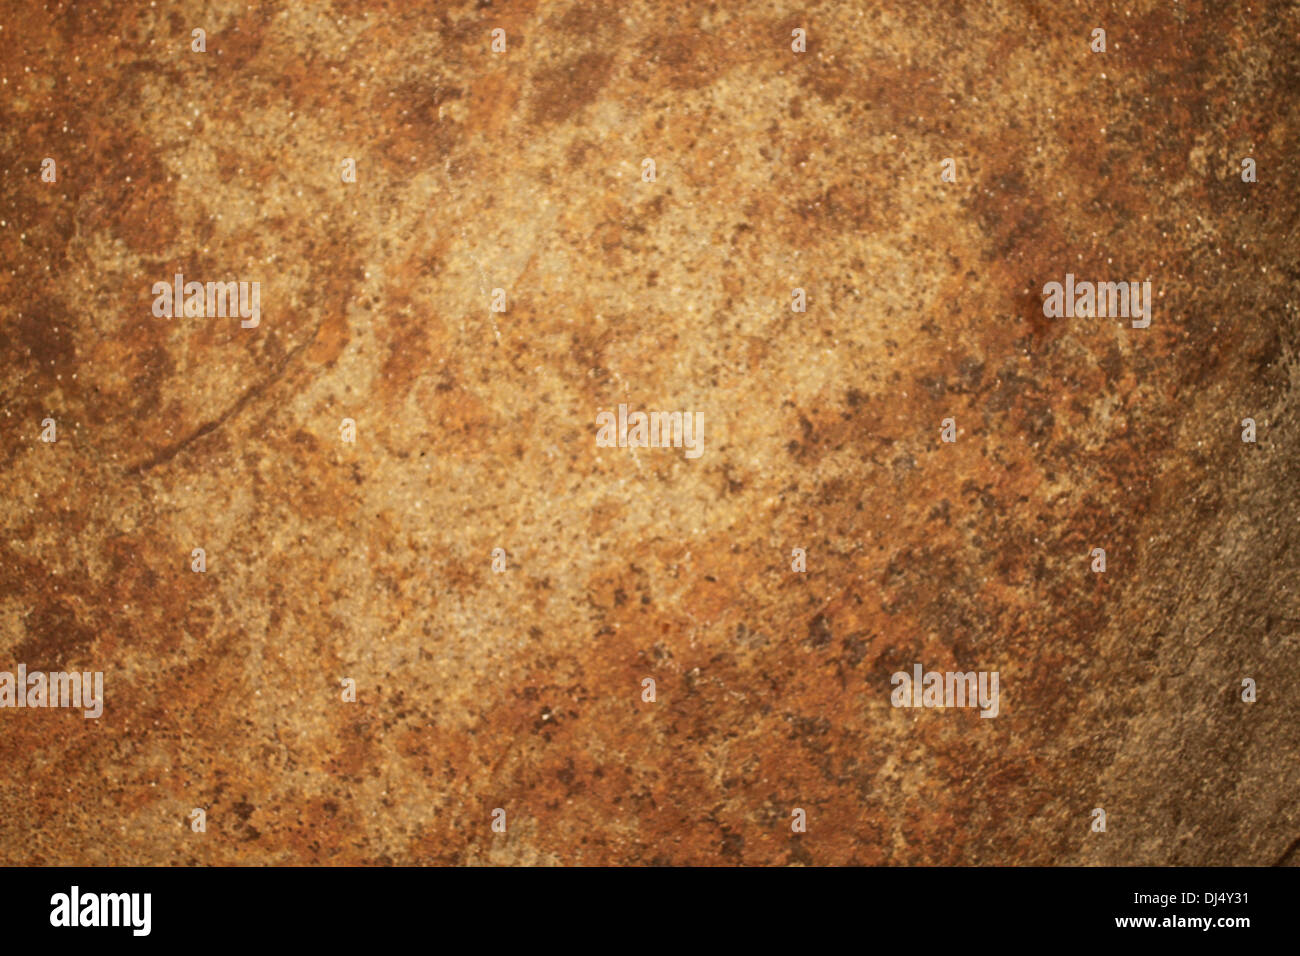 A textured background image of a terra cotta - Stock Image